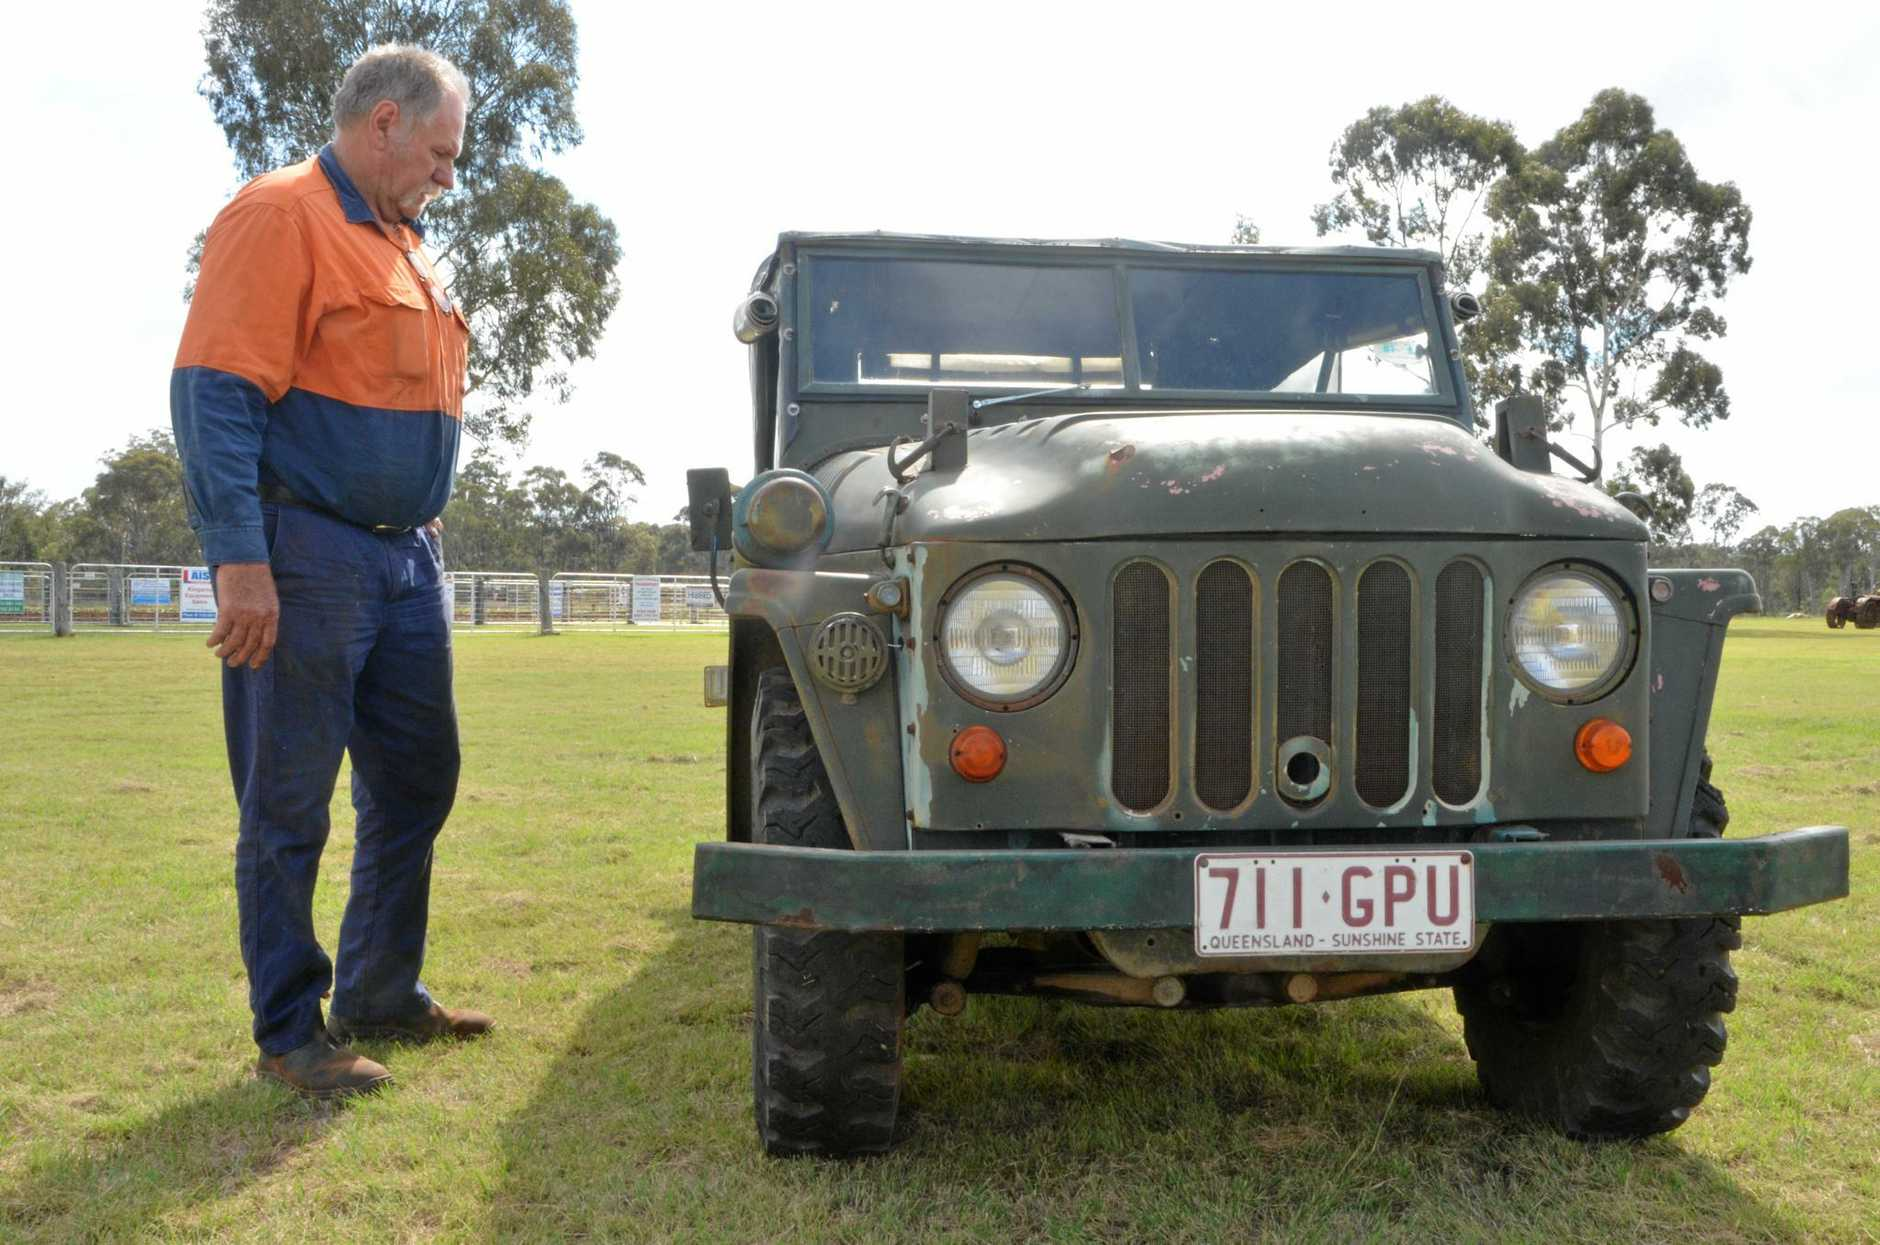 KINGAROY VINTAGE MACHINERY RALLY: Machinery club vice president Matt Londsdale stands next to an old Austin Champ.